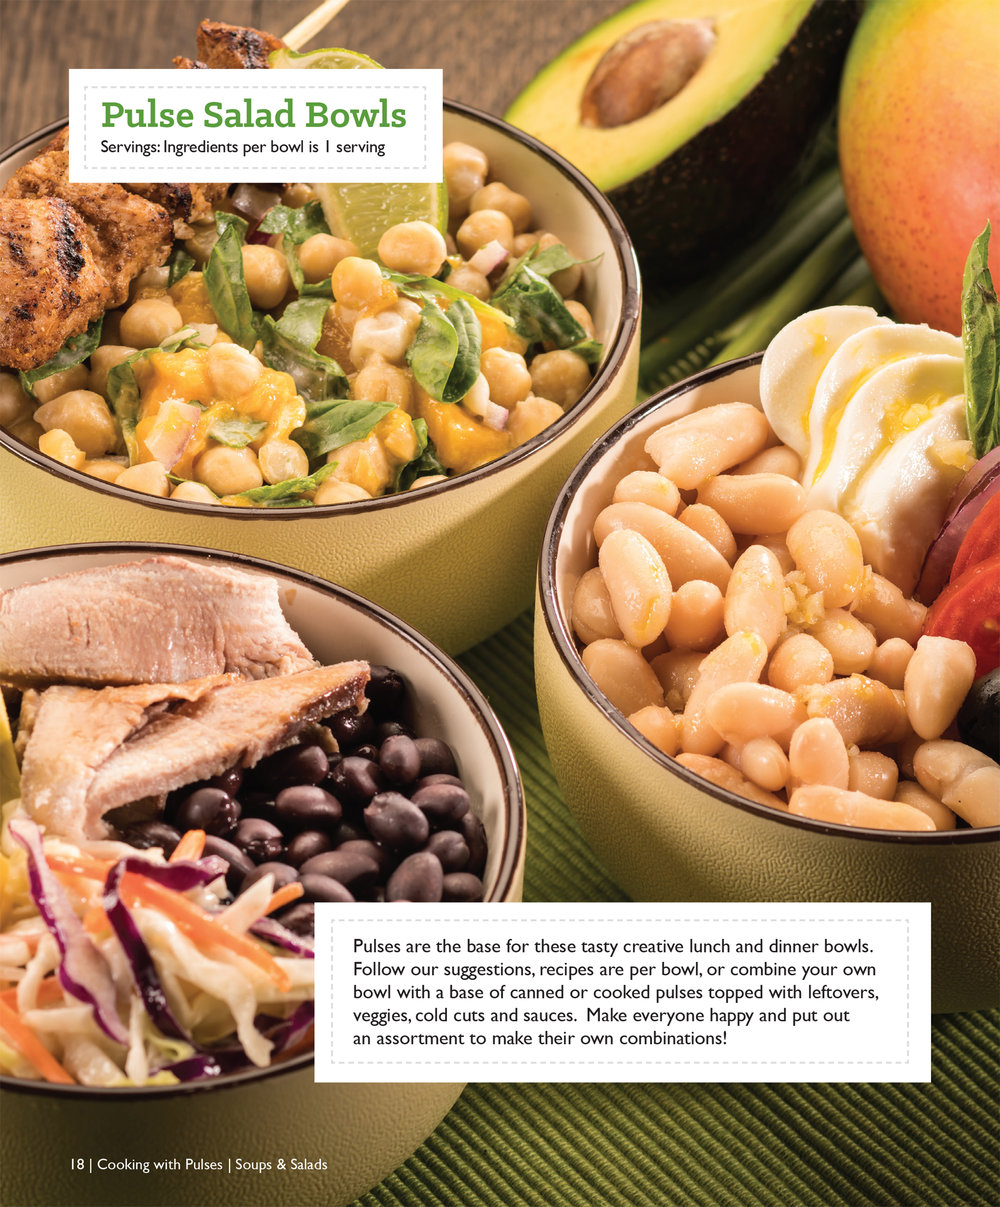 J000208 - Pulse Growers, Pulse Cookbooks_Final-18.jpg